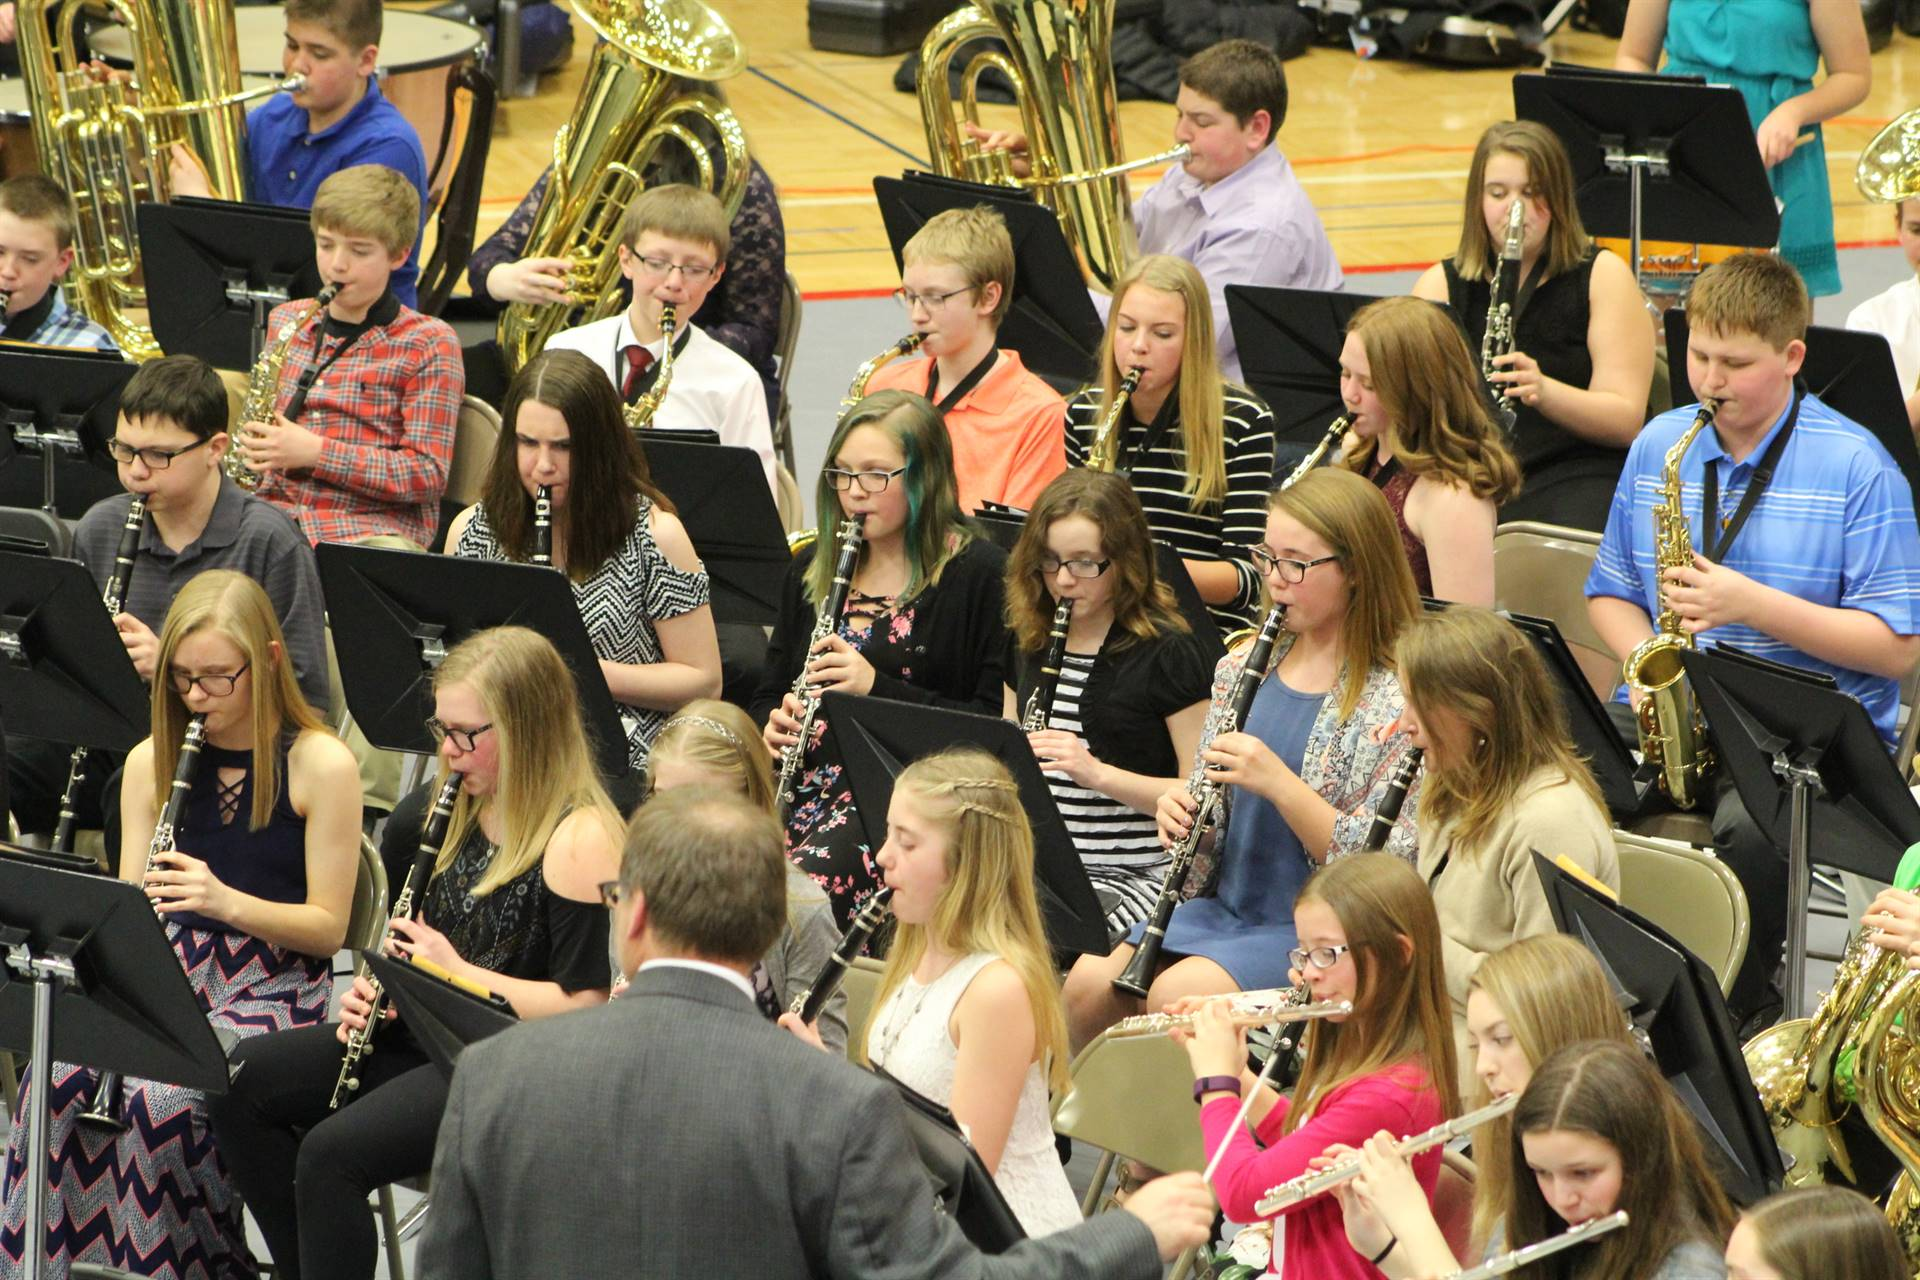 A group of junior high student performing at a band concert